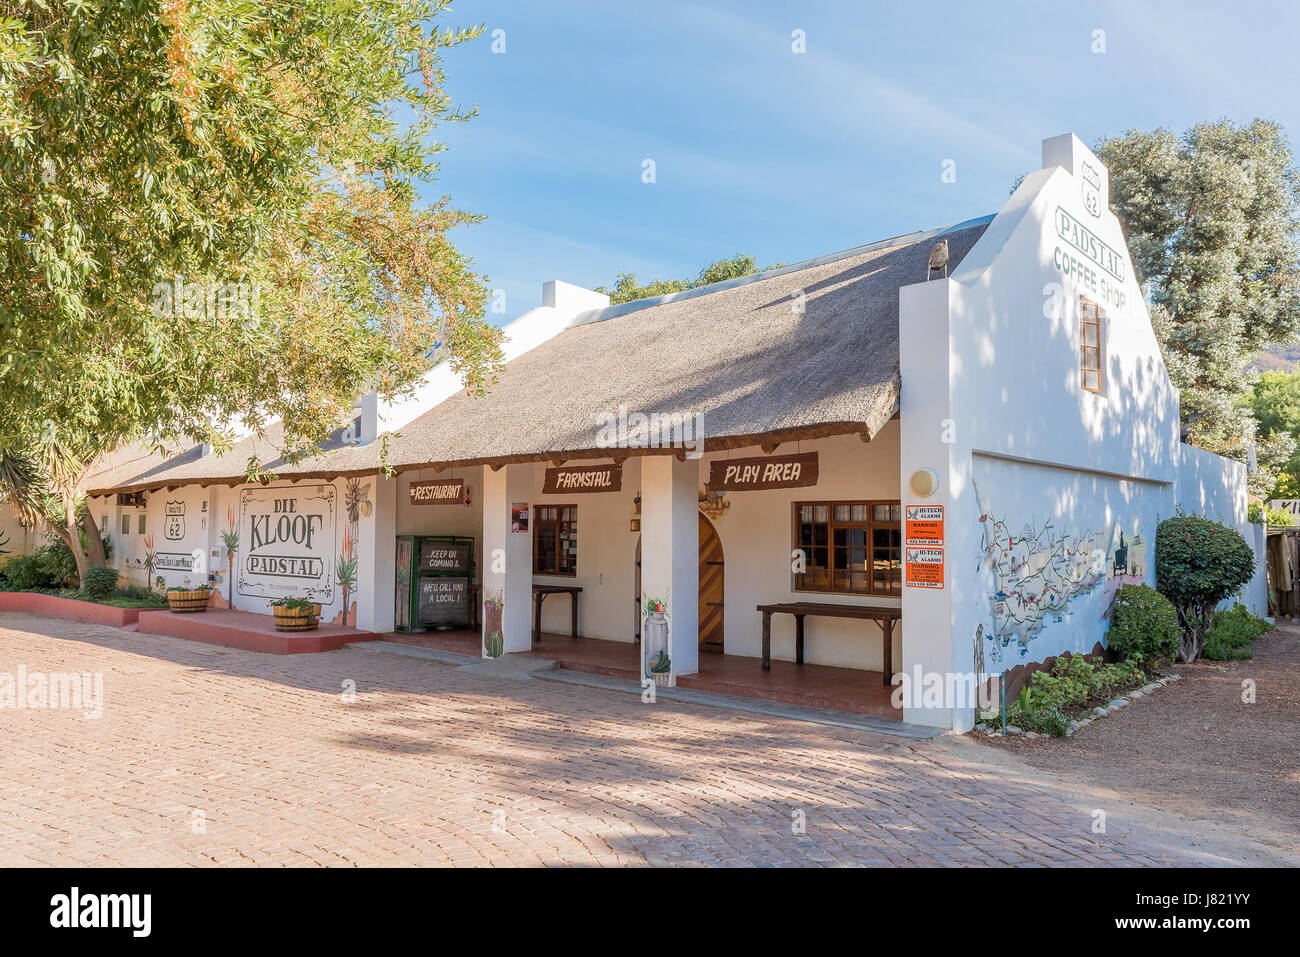 montagu, south africa - march 26, 2017: a farm stall and